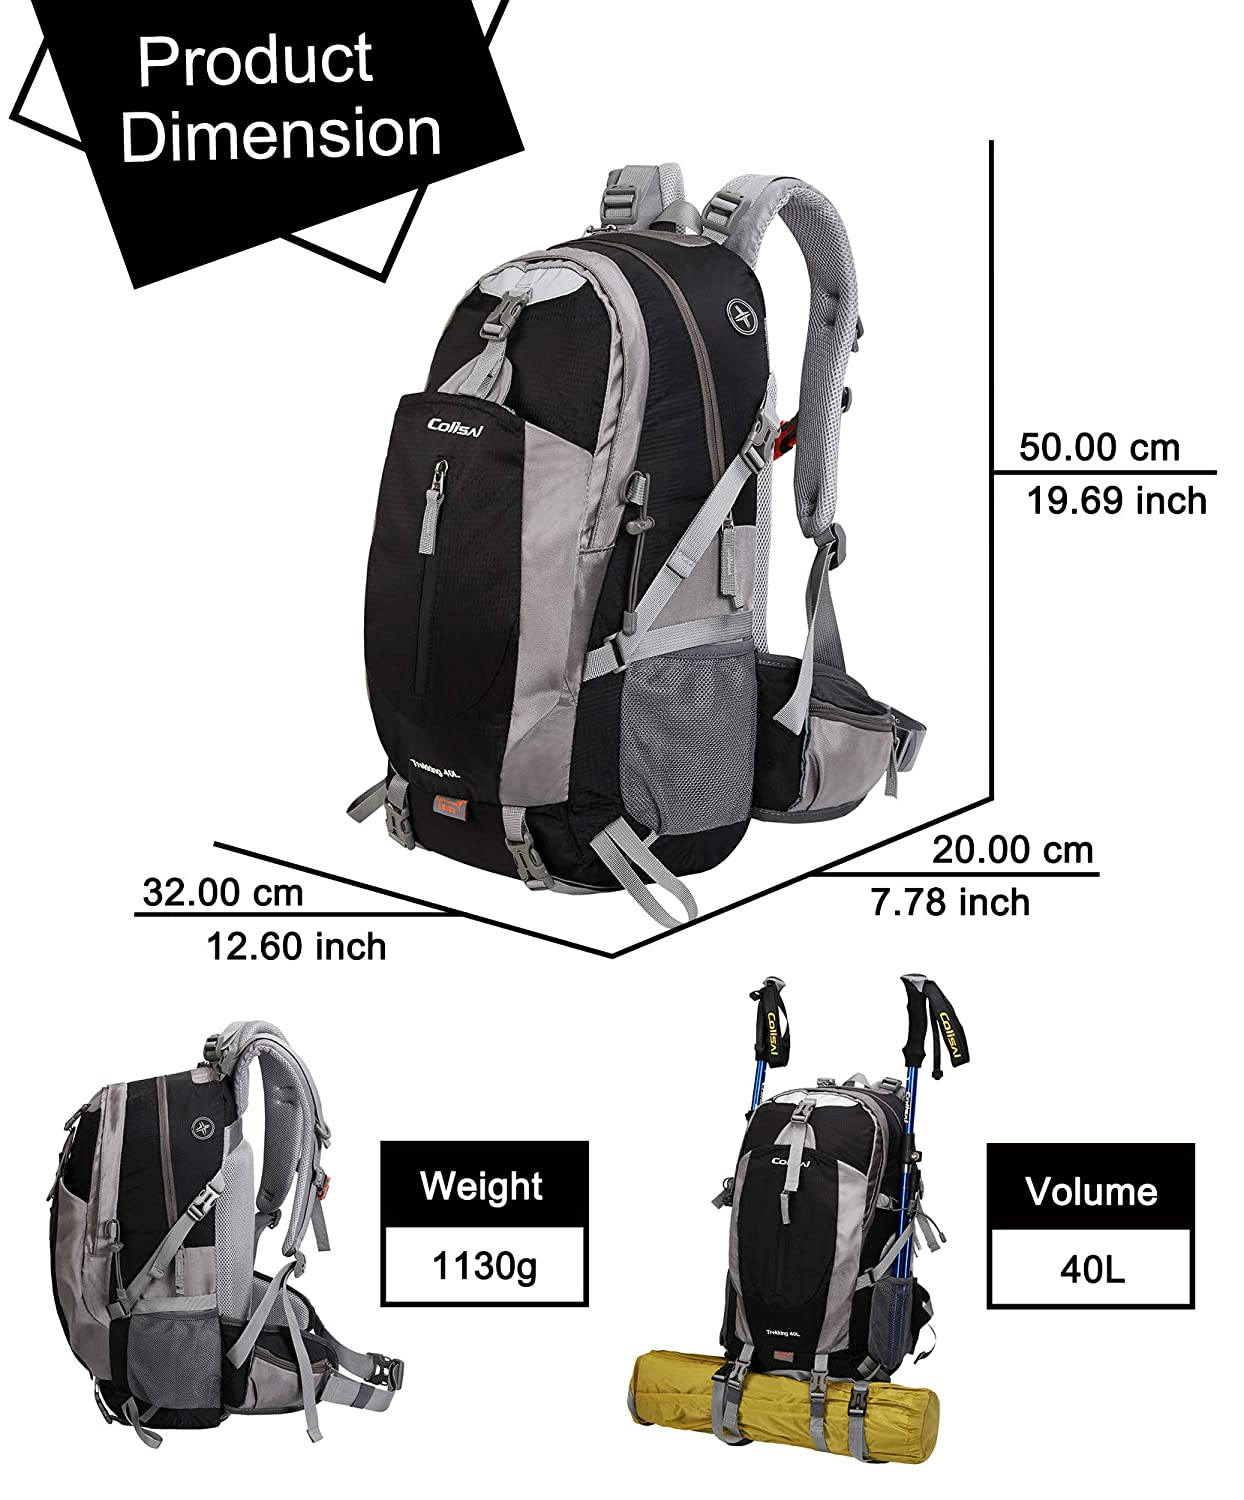 COLISAL 40L Hiking Backpack with Rain Cover Travel Outdoor Rucksack Waterproof for Men Women Lightweight Camping Backpack